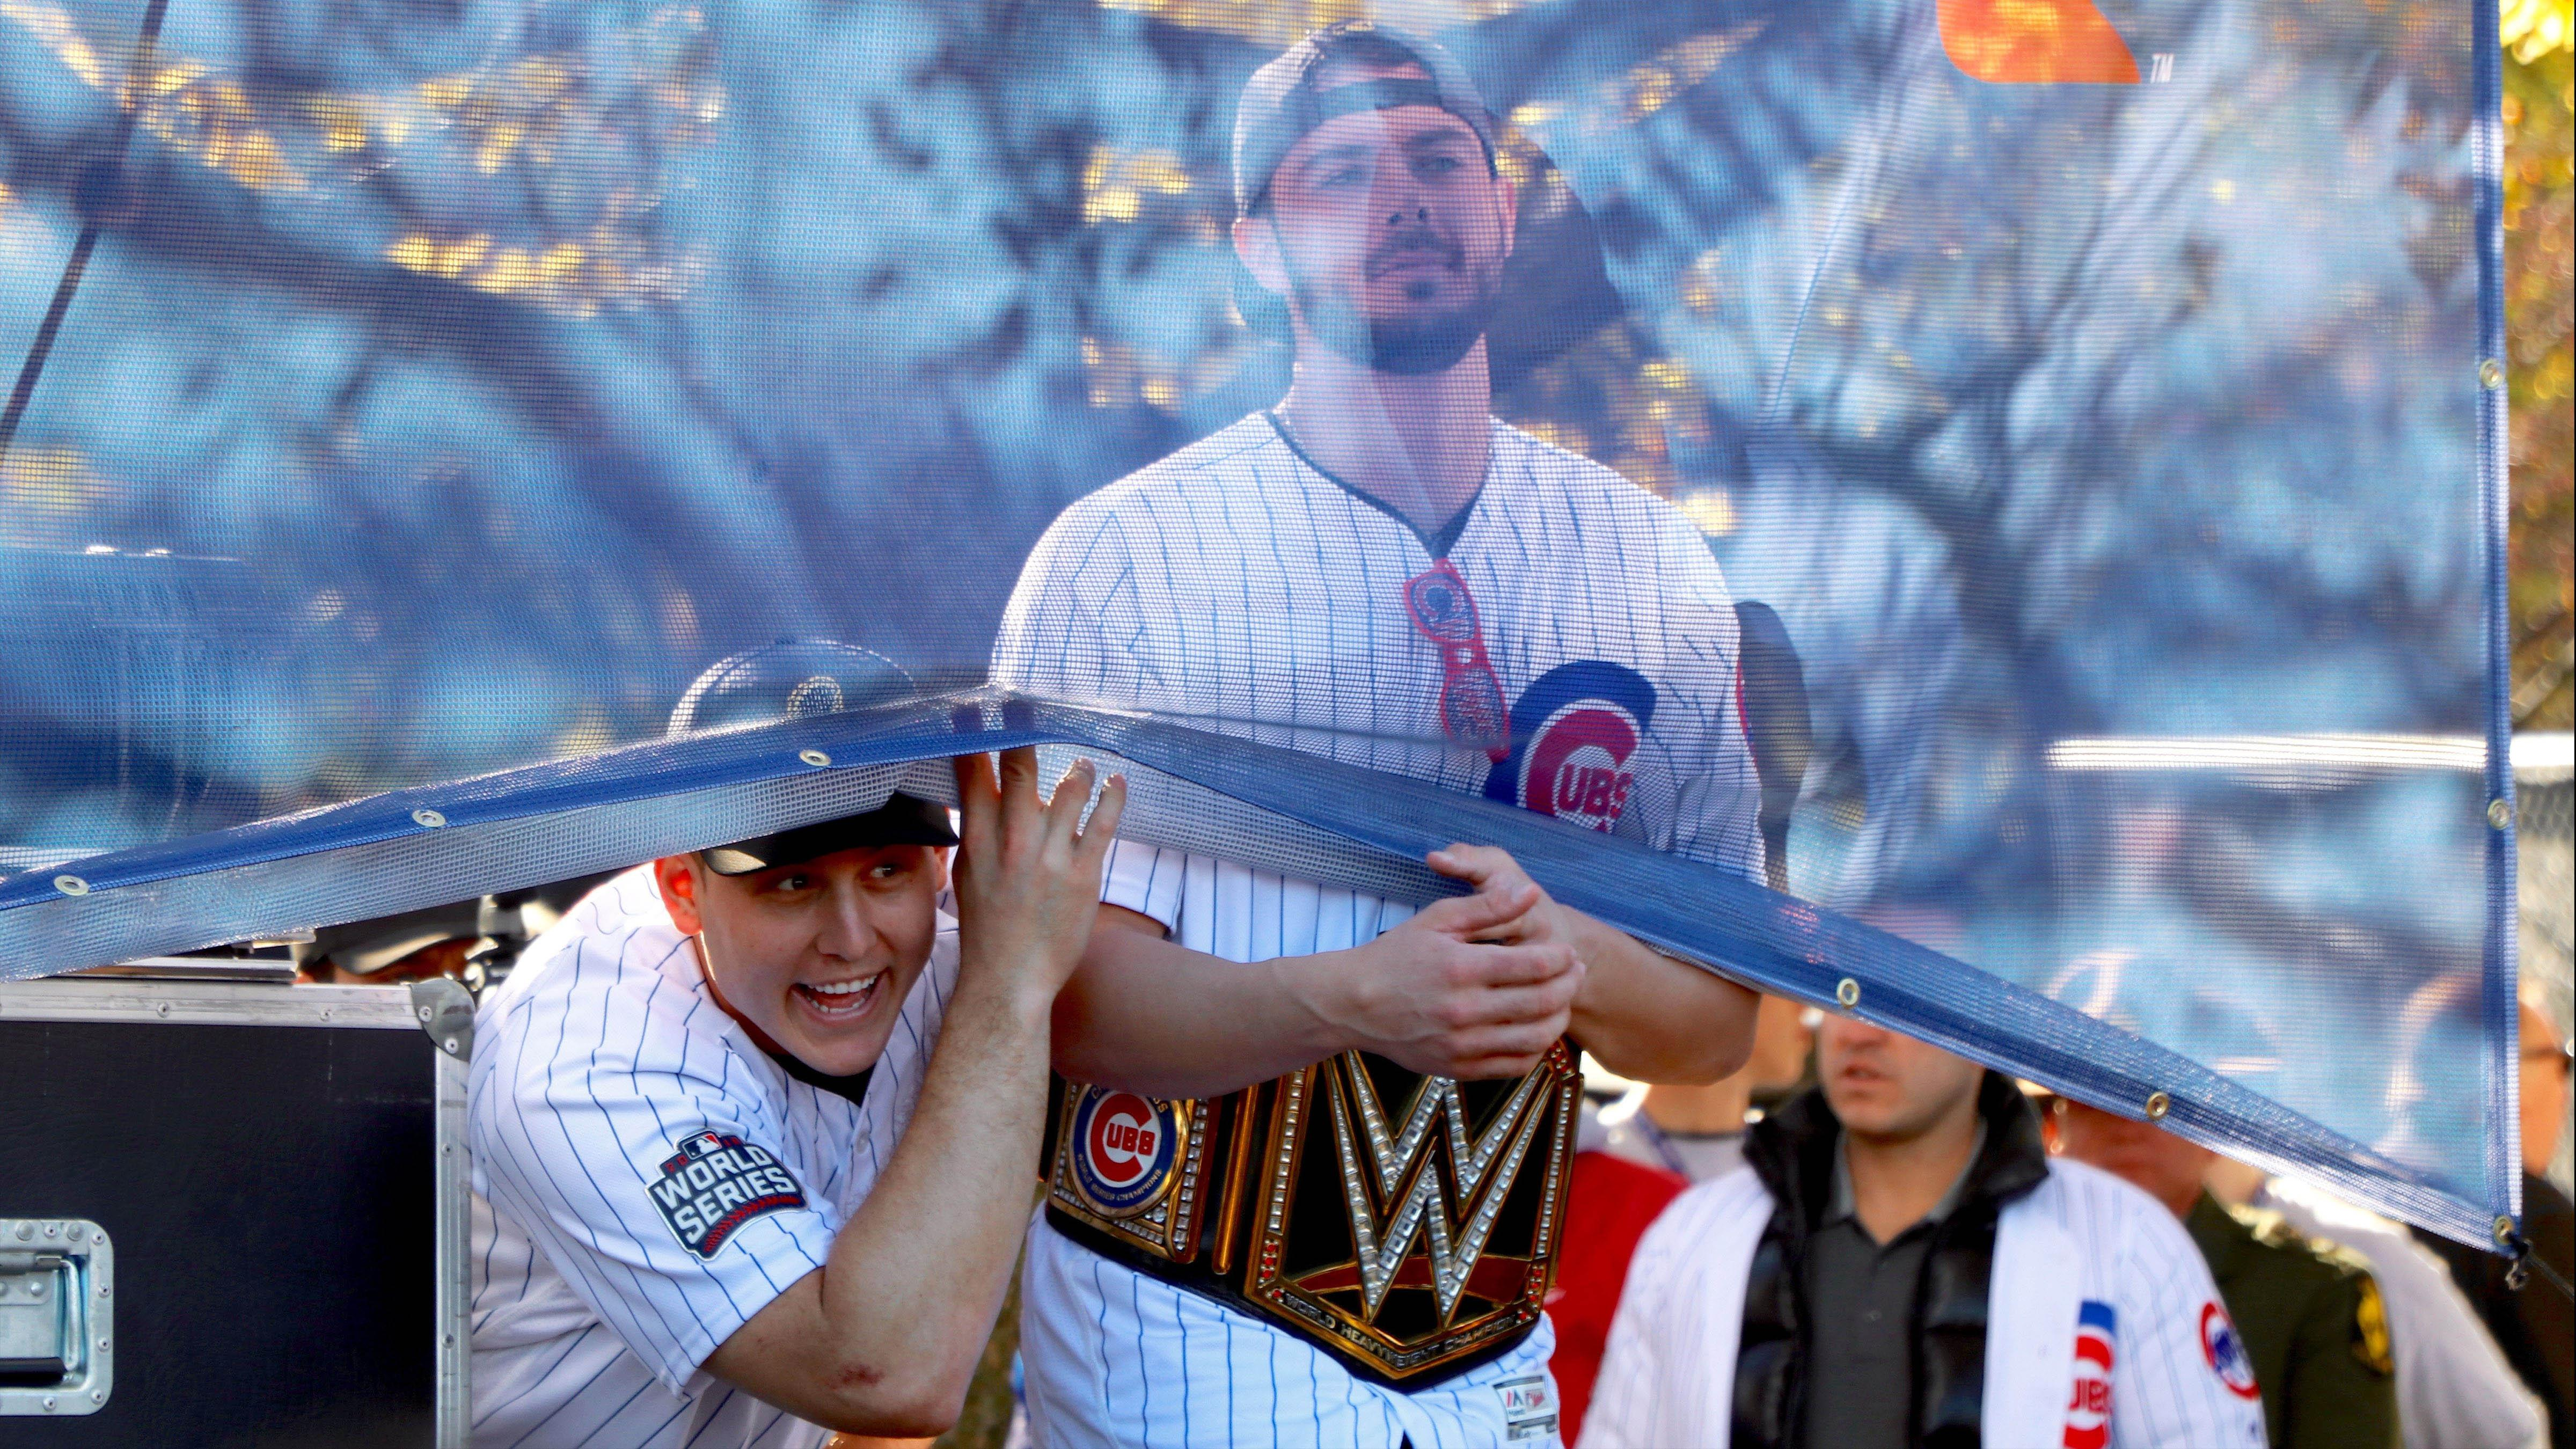 da7963359dd Cubs players Anthony Rizzo and Kris Bryant joke with the crowd before the  team is introduced at the World Series rally in Grant Park.